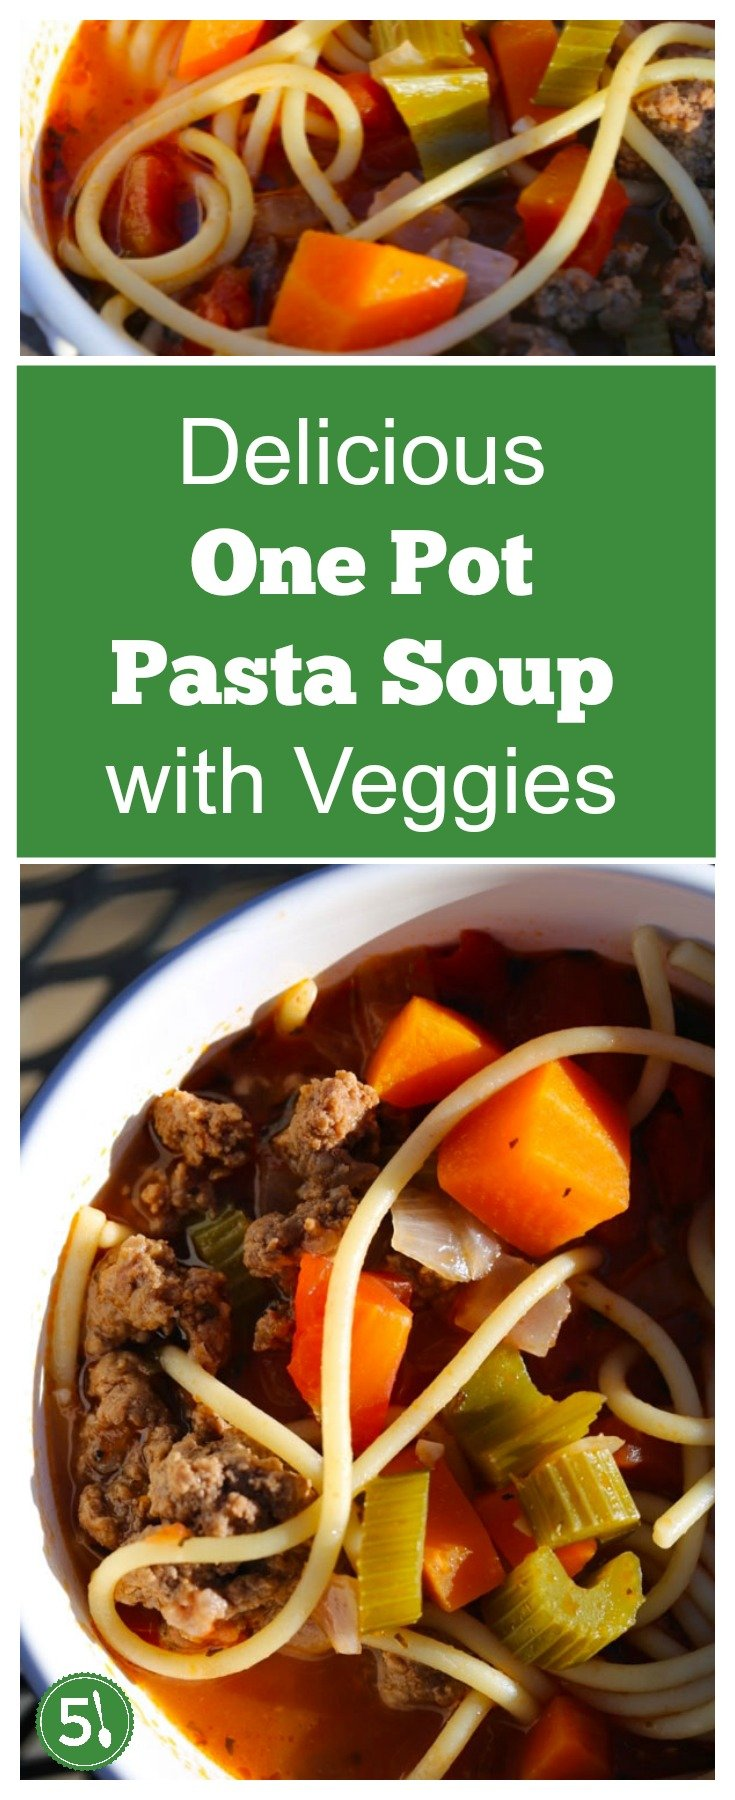 Pasta soup with ground beef and veggies that is such an easy comfort food to whip up for a healthy midweek dinner. Using your dutch oven or stock pot, this is a one pot dinner.